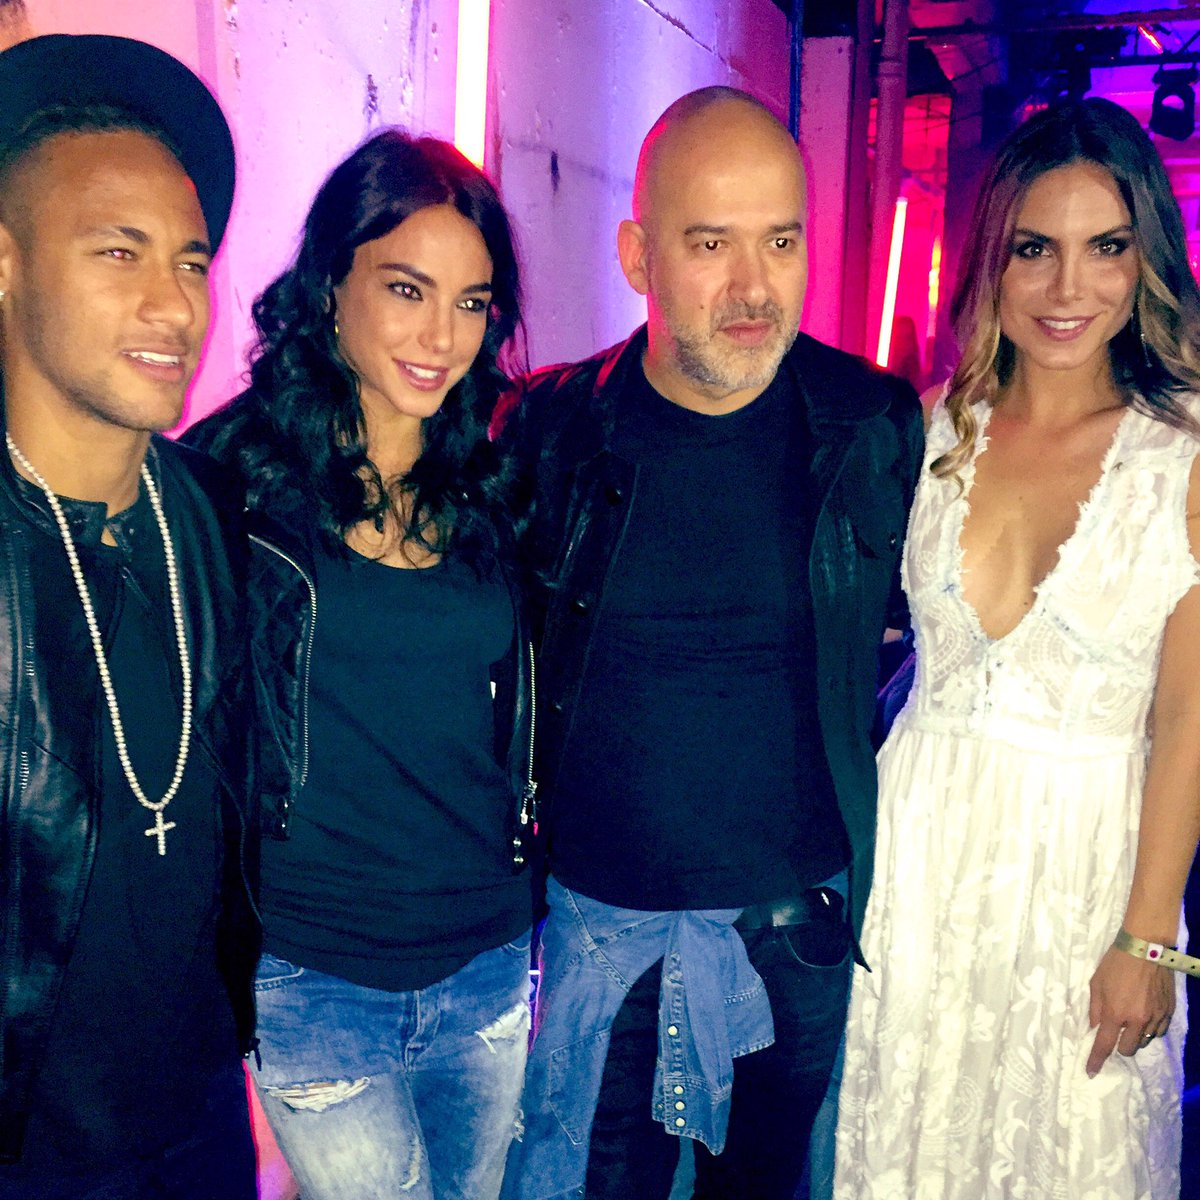 Posing with the Boss #matteosinigaglia @neymarjr @chiarabiasi @NinaSenicar https://t.co/i6BW2qoniz